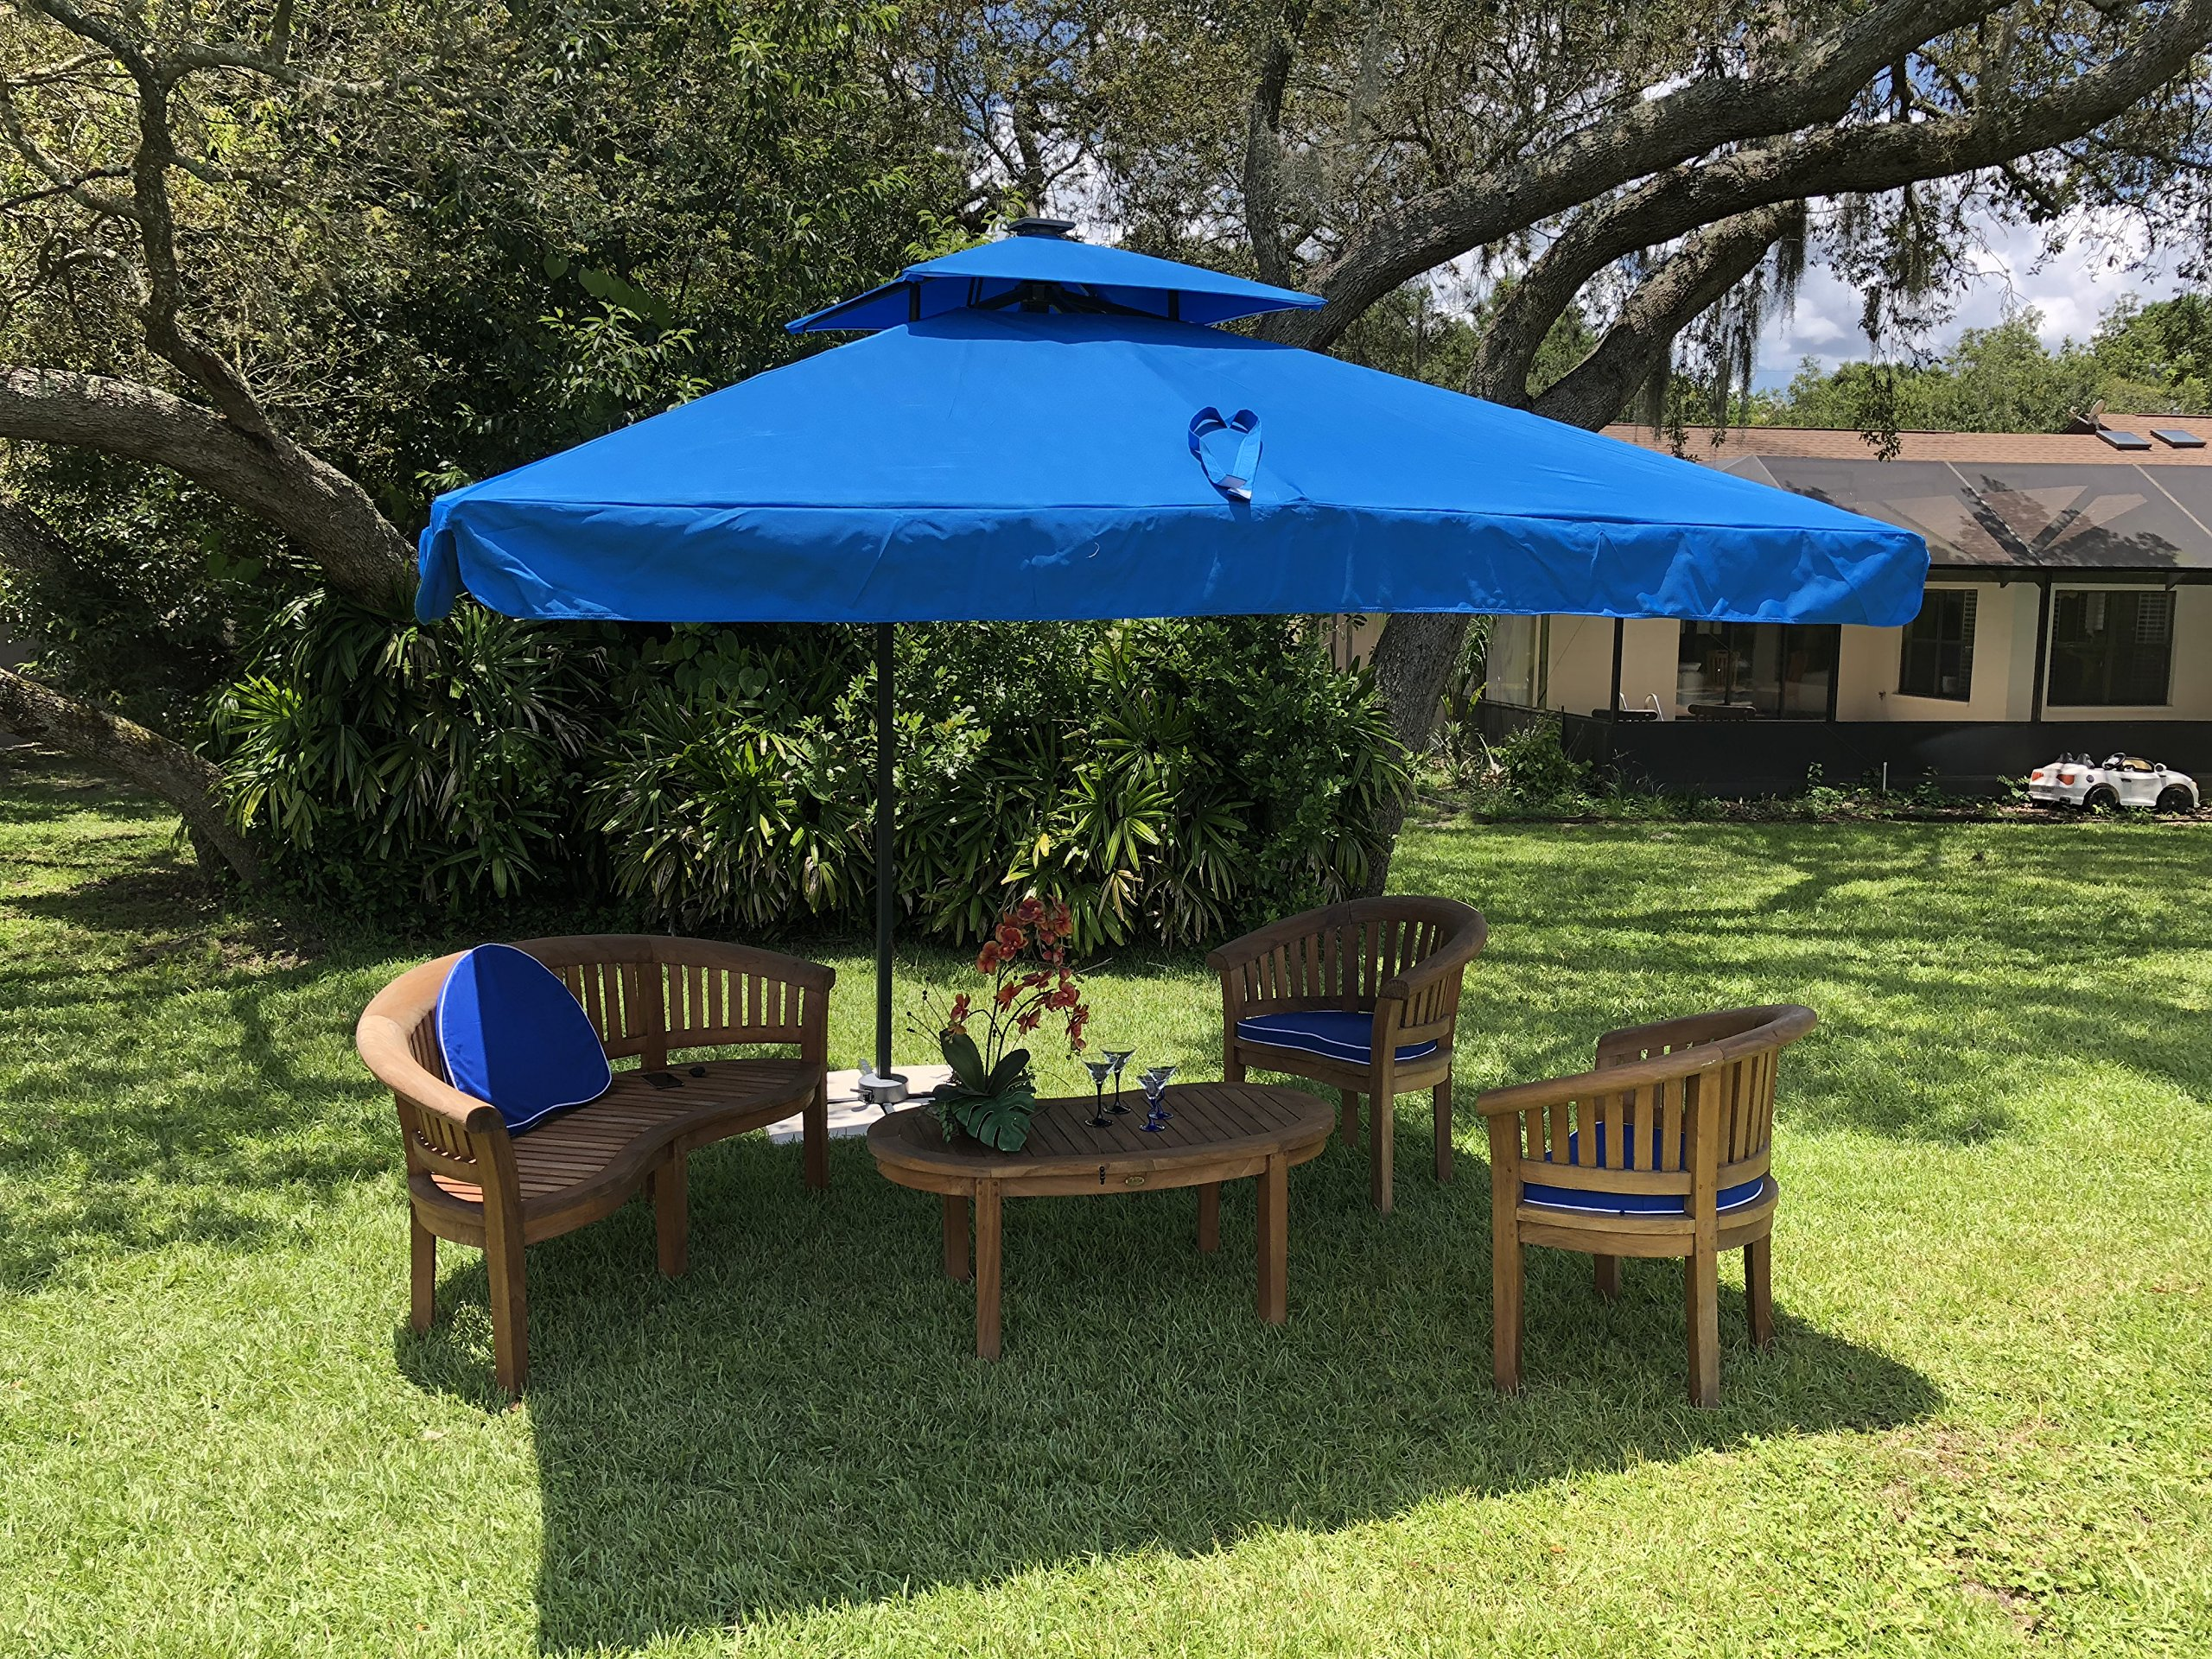 10-Foot Offset Cantilever Solar Powered LED Lighted Outdoor Patio Umbrella Square Parasol Infinite Tilt Position with Cross Base Yellow - Solar Powered LED Lights included XL 10' x 10' Canopy provides maximum shade coverage area 360° Rotation and Full Tilt - shades-parasols, patio-furniture, patio - A15Ag9qIXHL -